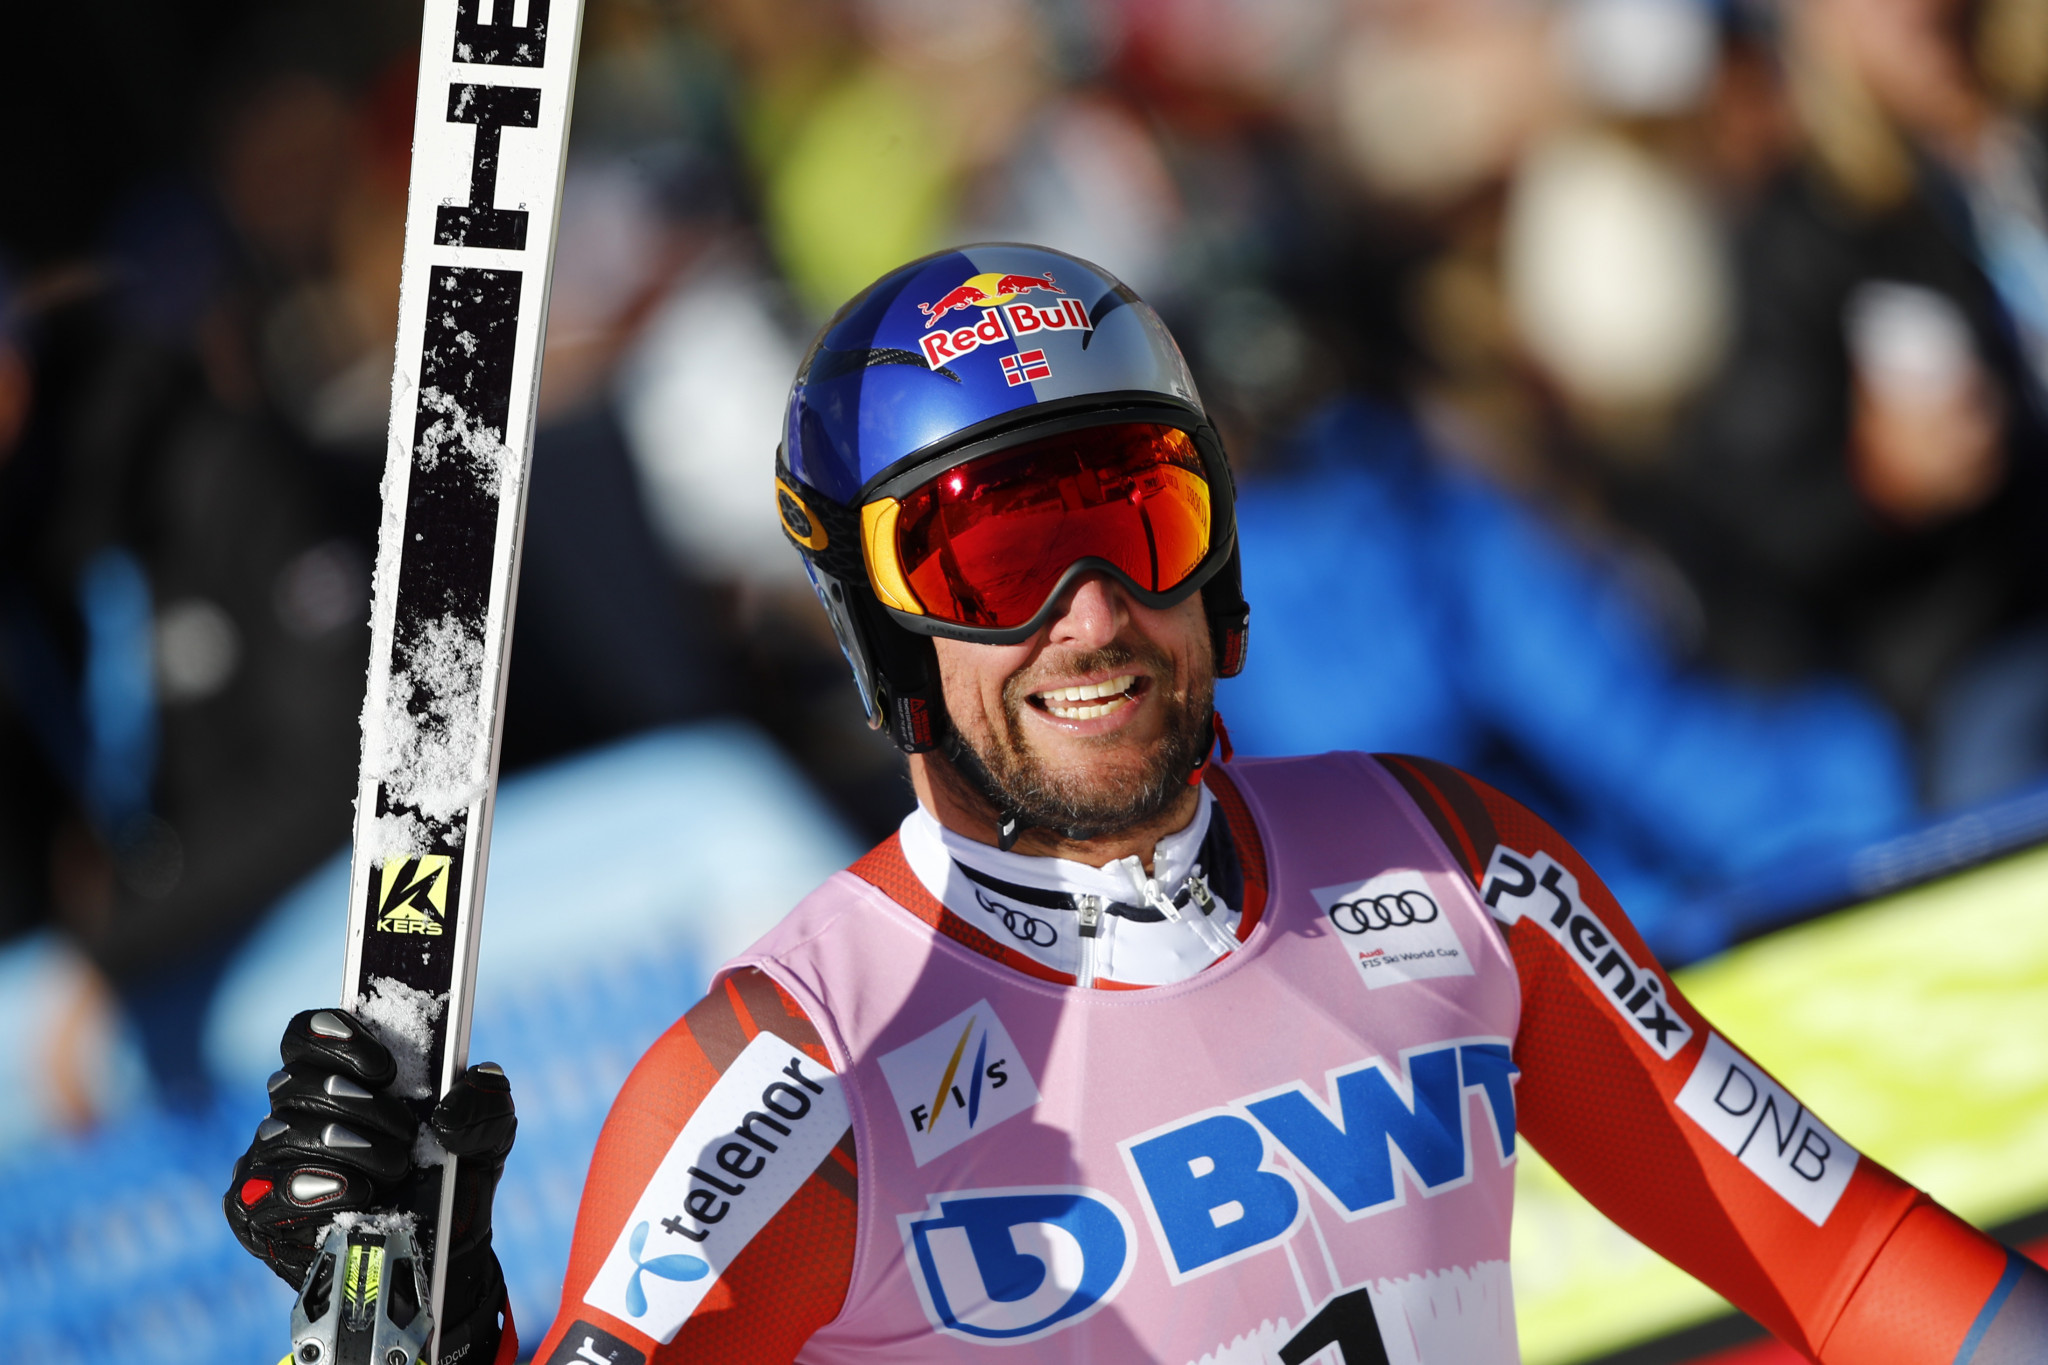 Svindal tops men's downhill podium at FIS Alpine Skiing World Cup in Beaver Creek